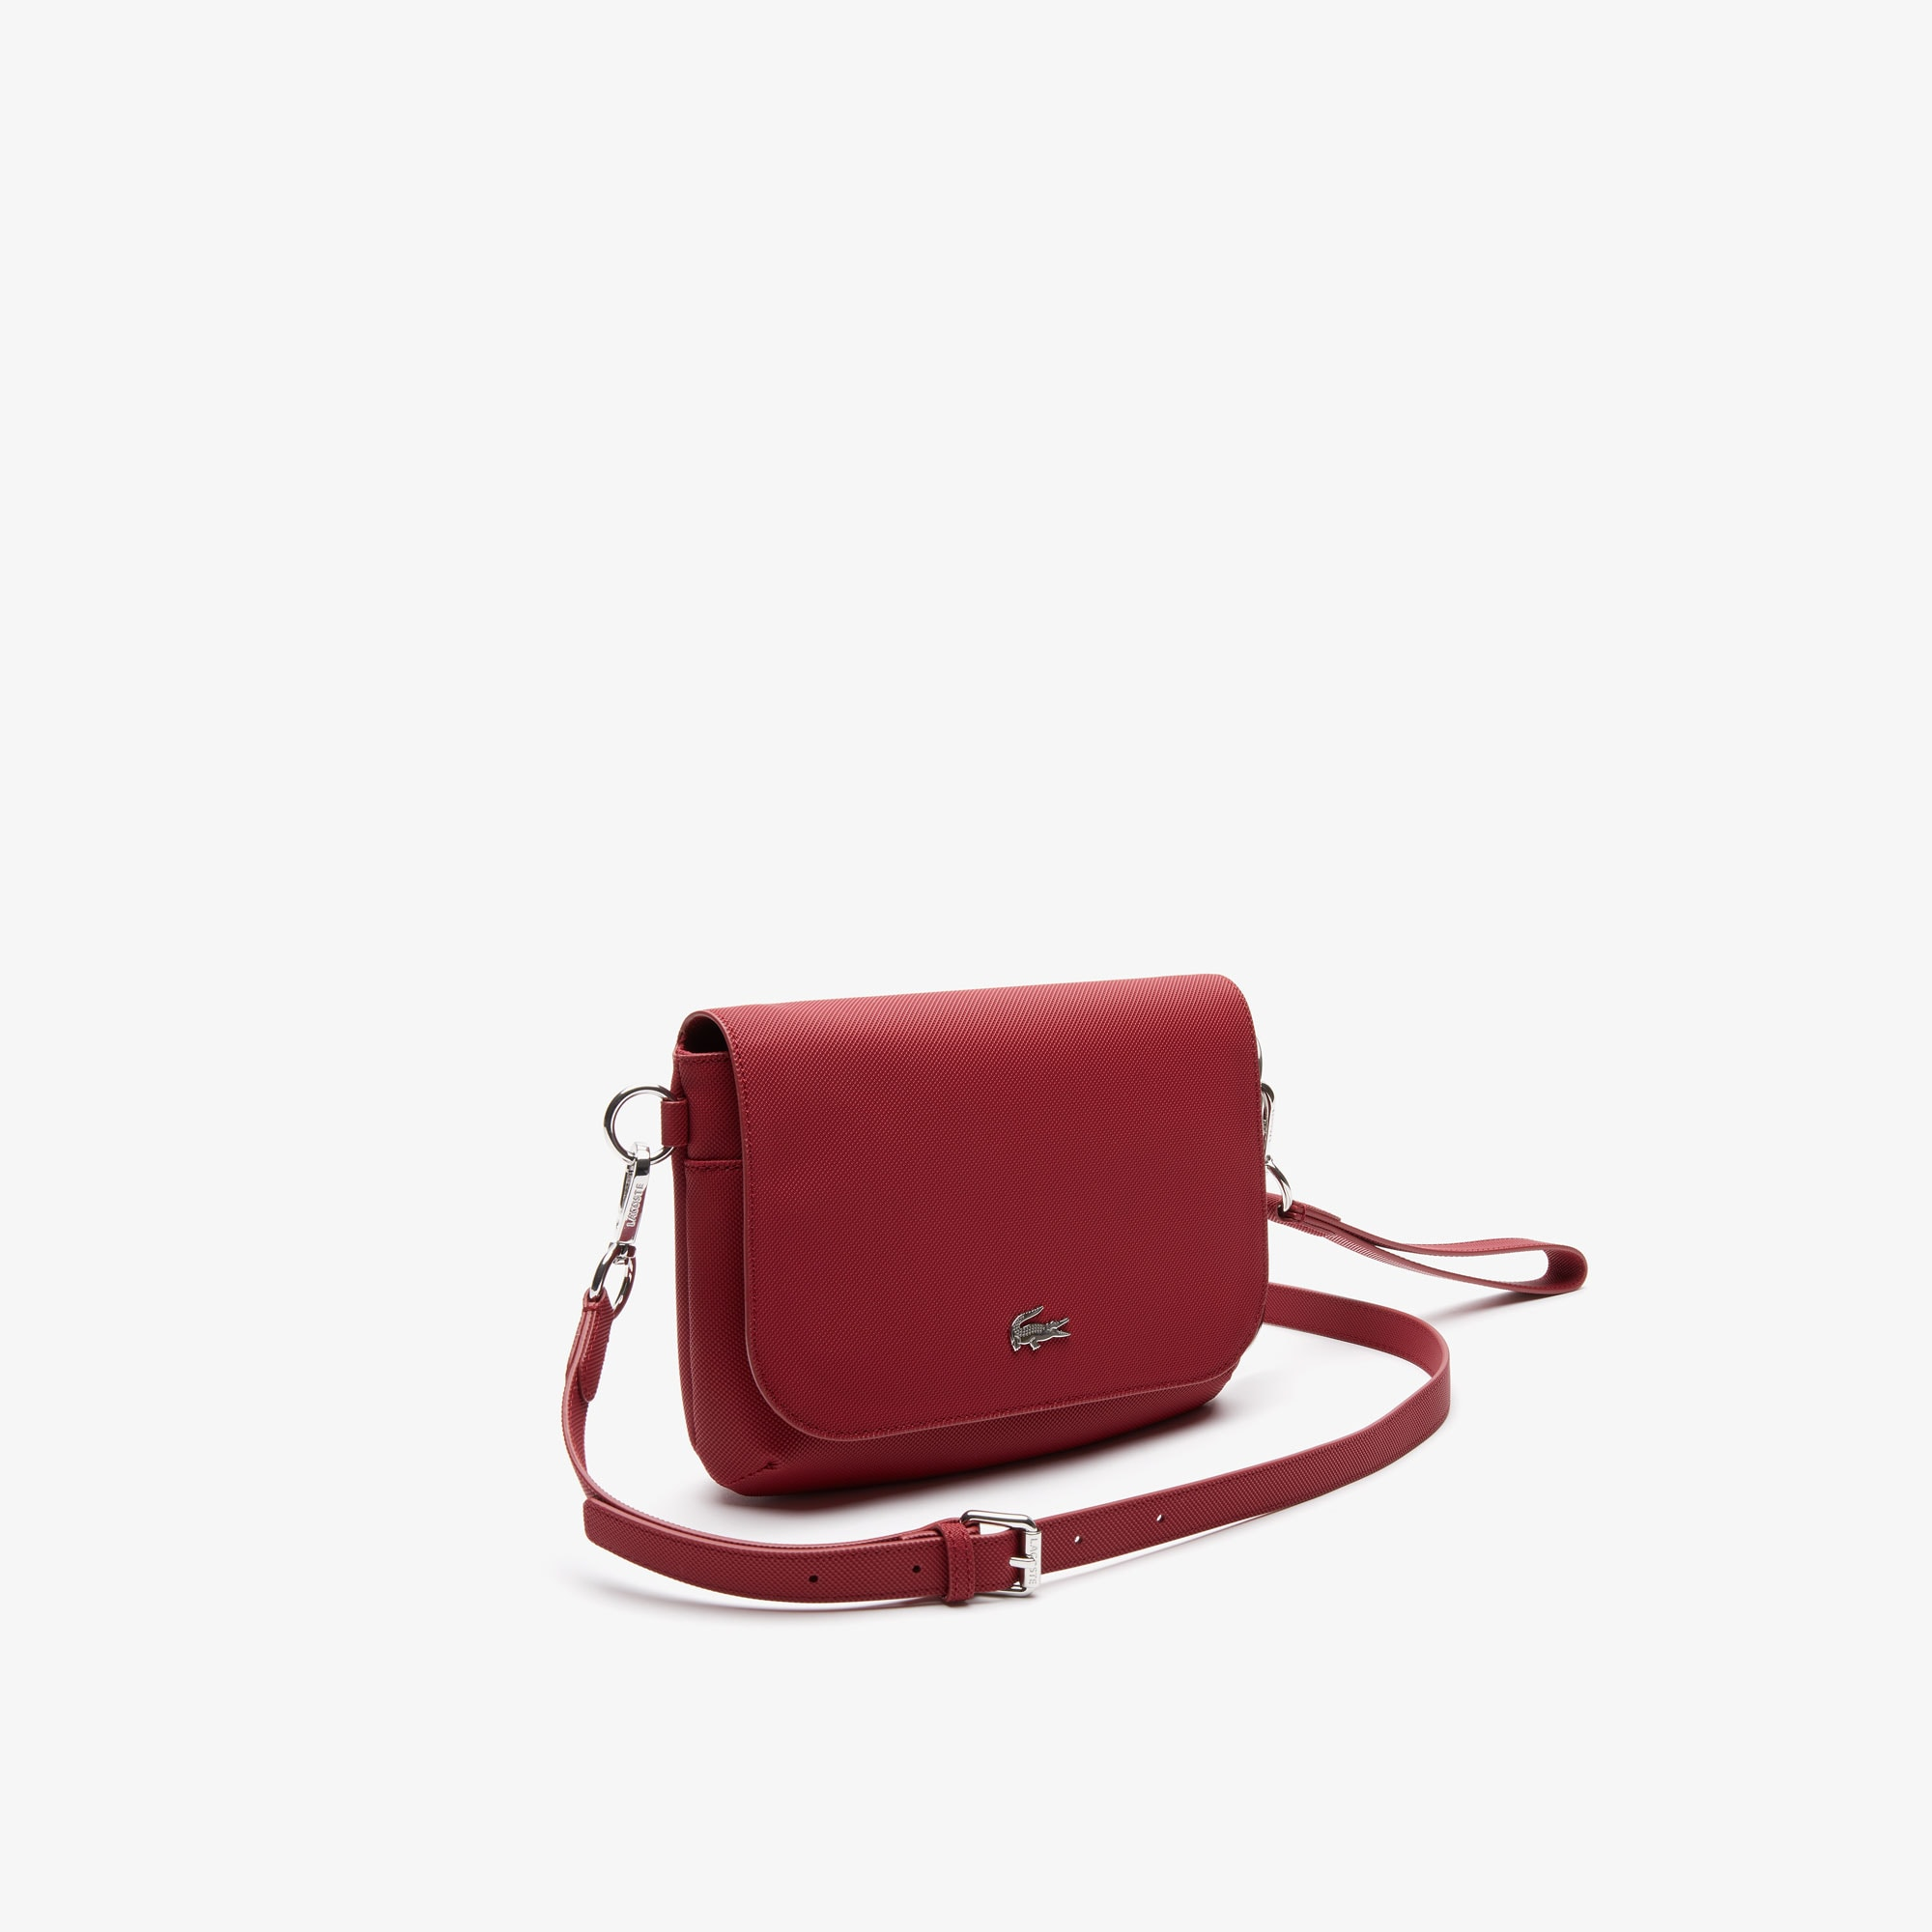 Women's Daily Classic Coated Piqué Canvas Flap Shoulder Bag